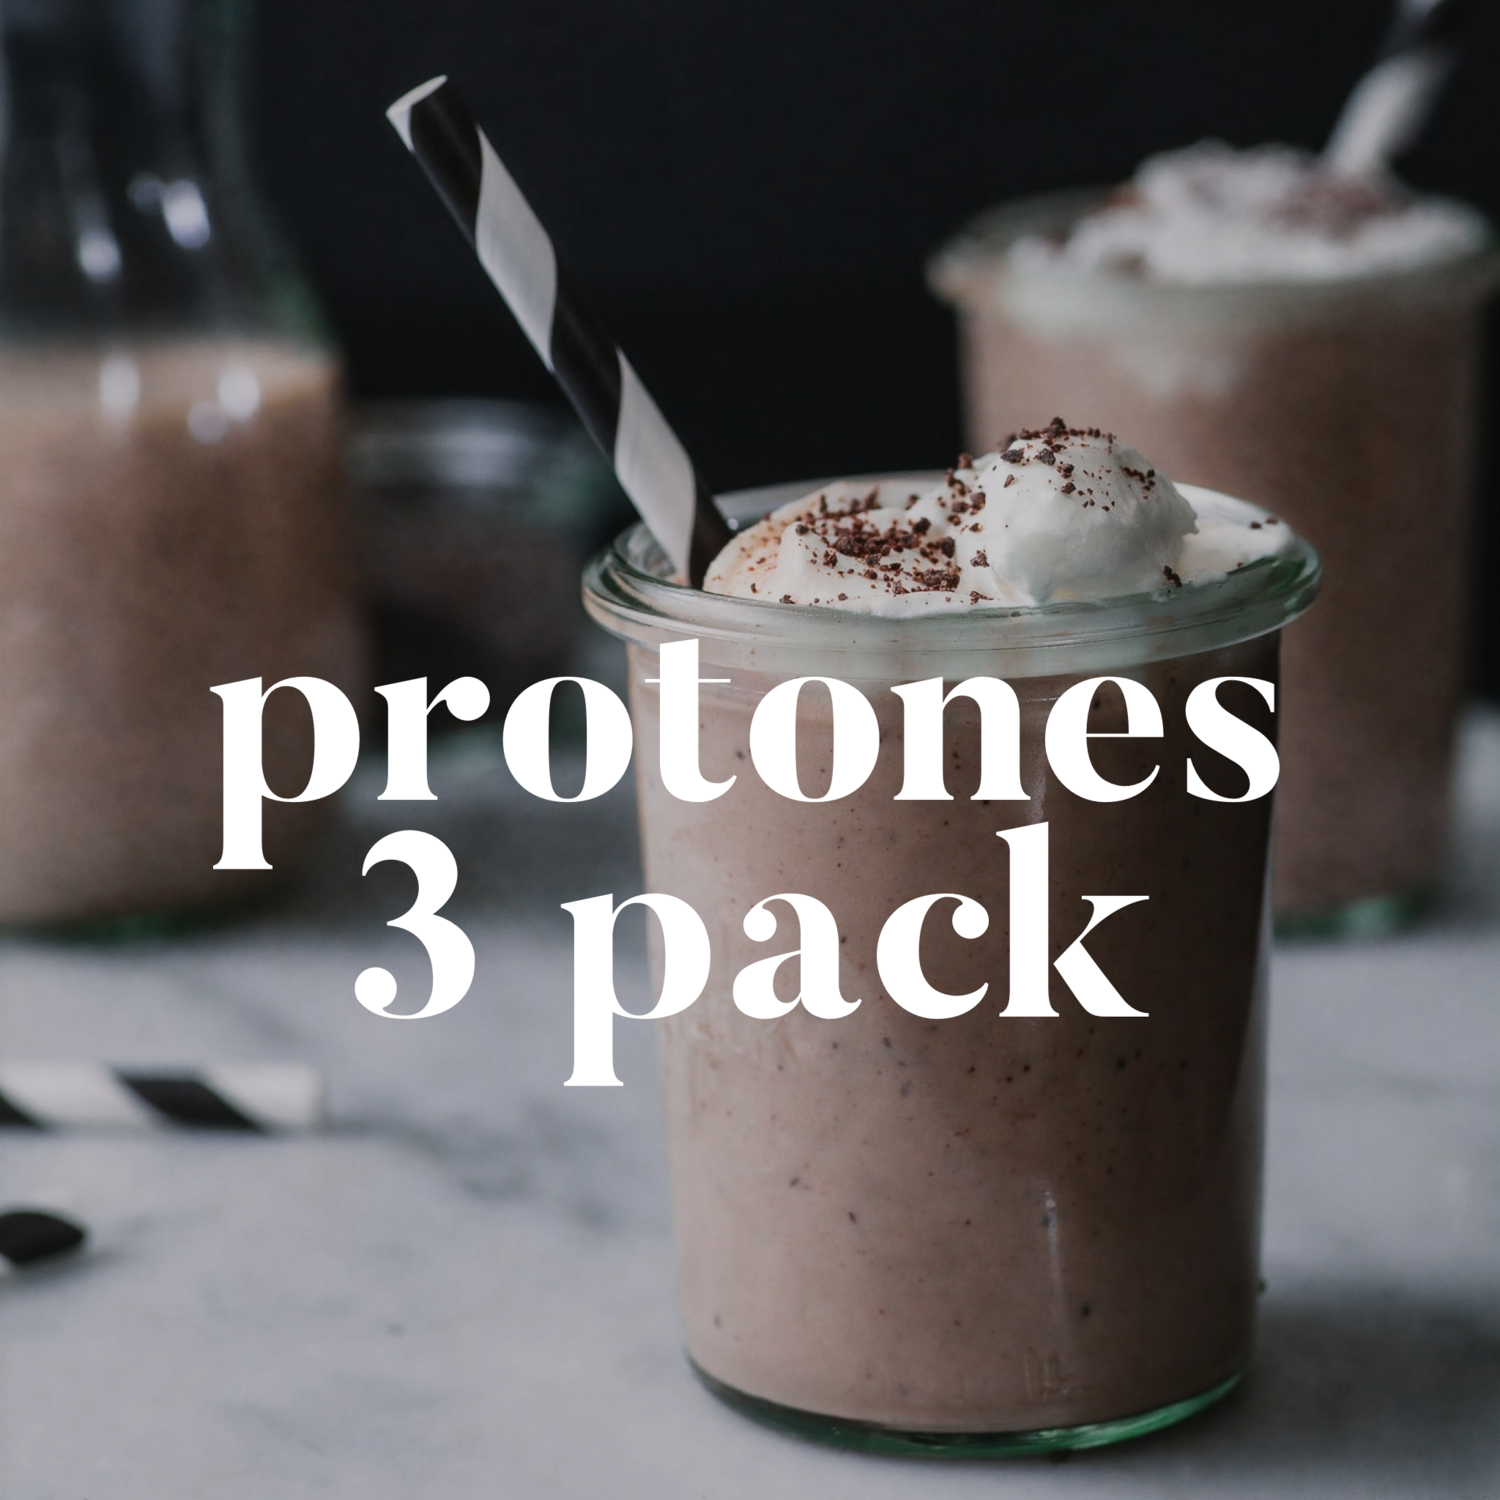 Protones Mix Pack - ONLY ONE 3 PACK PER CUSTOMER